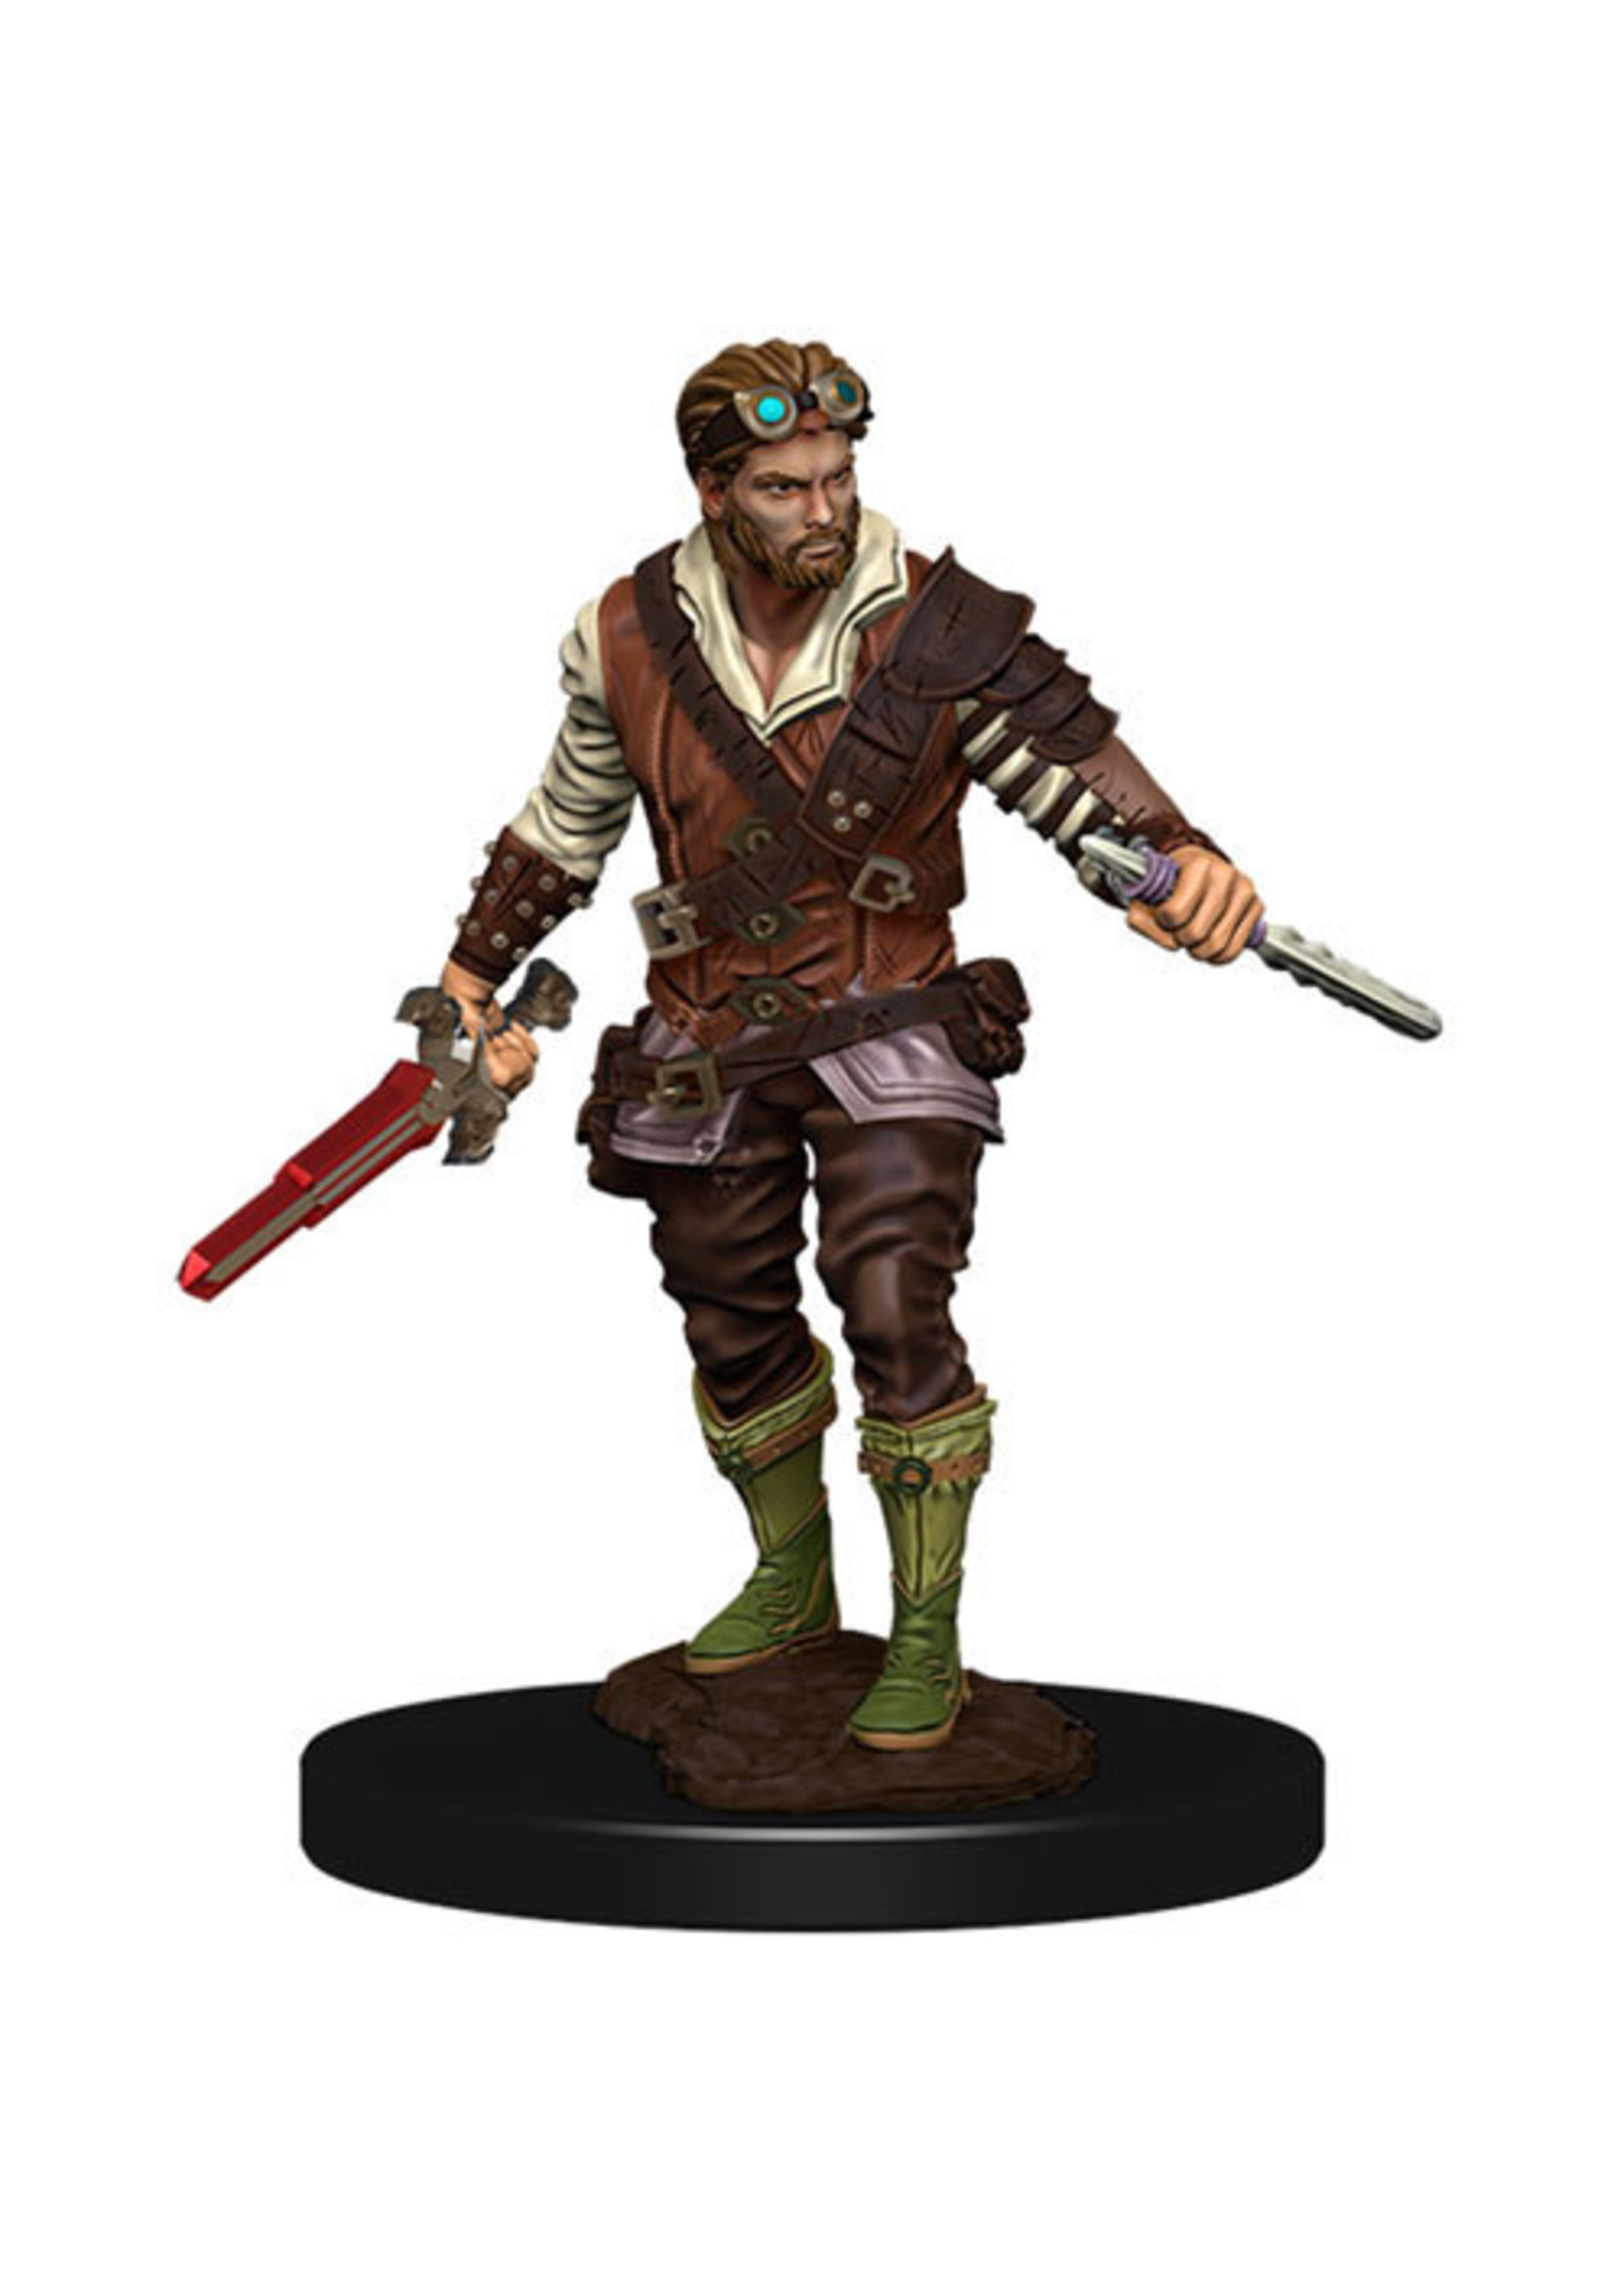 Dungeons & Dragons Fantasy Miniatures: Icons of the Realms Premium Figures W4 Human Rogue Male